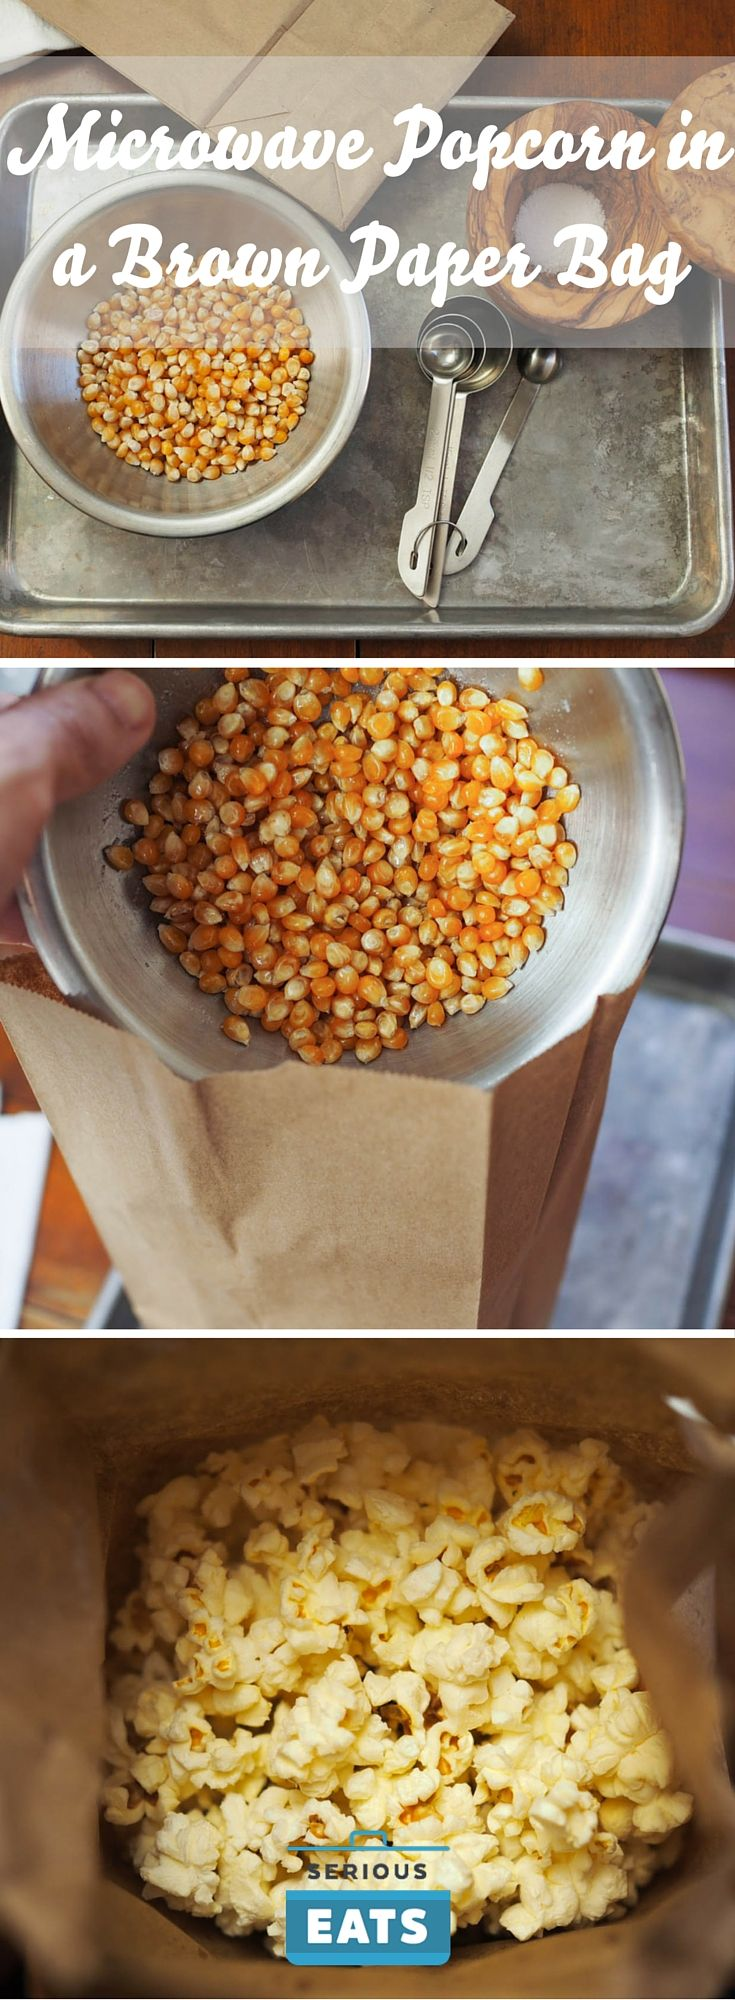 How to Make Microwave Popcorn in a Brown Paper Bag - Paper Diy